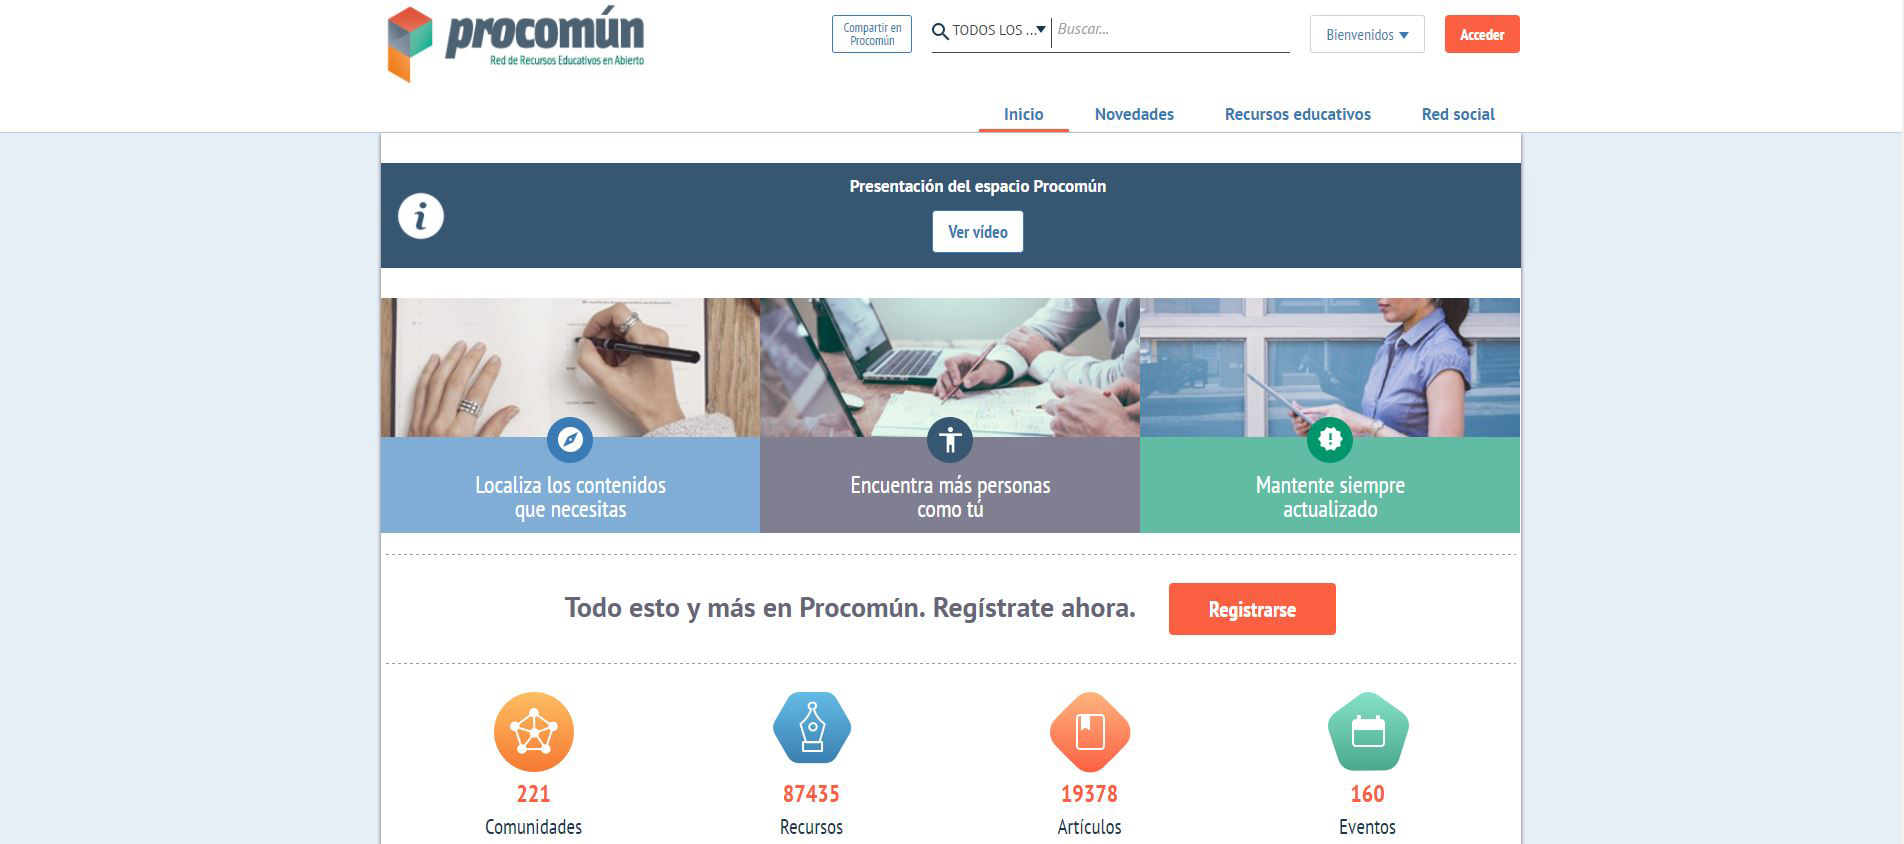 Procomun, the portal to share educational resources that combines Drupal and Java